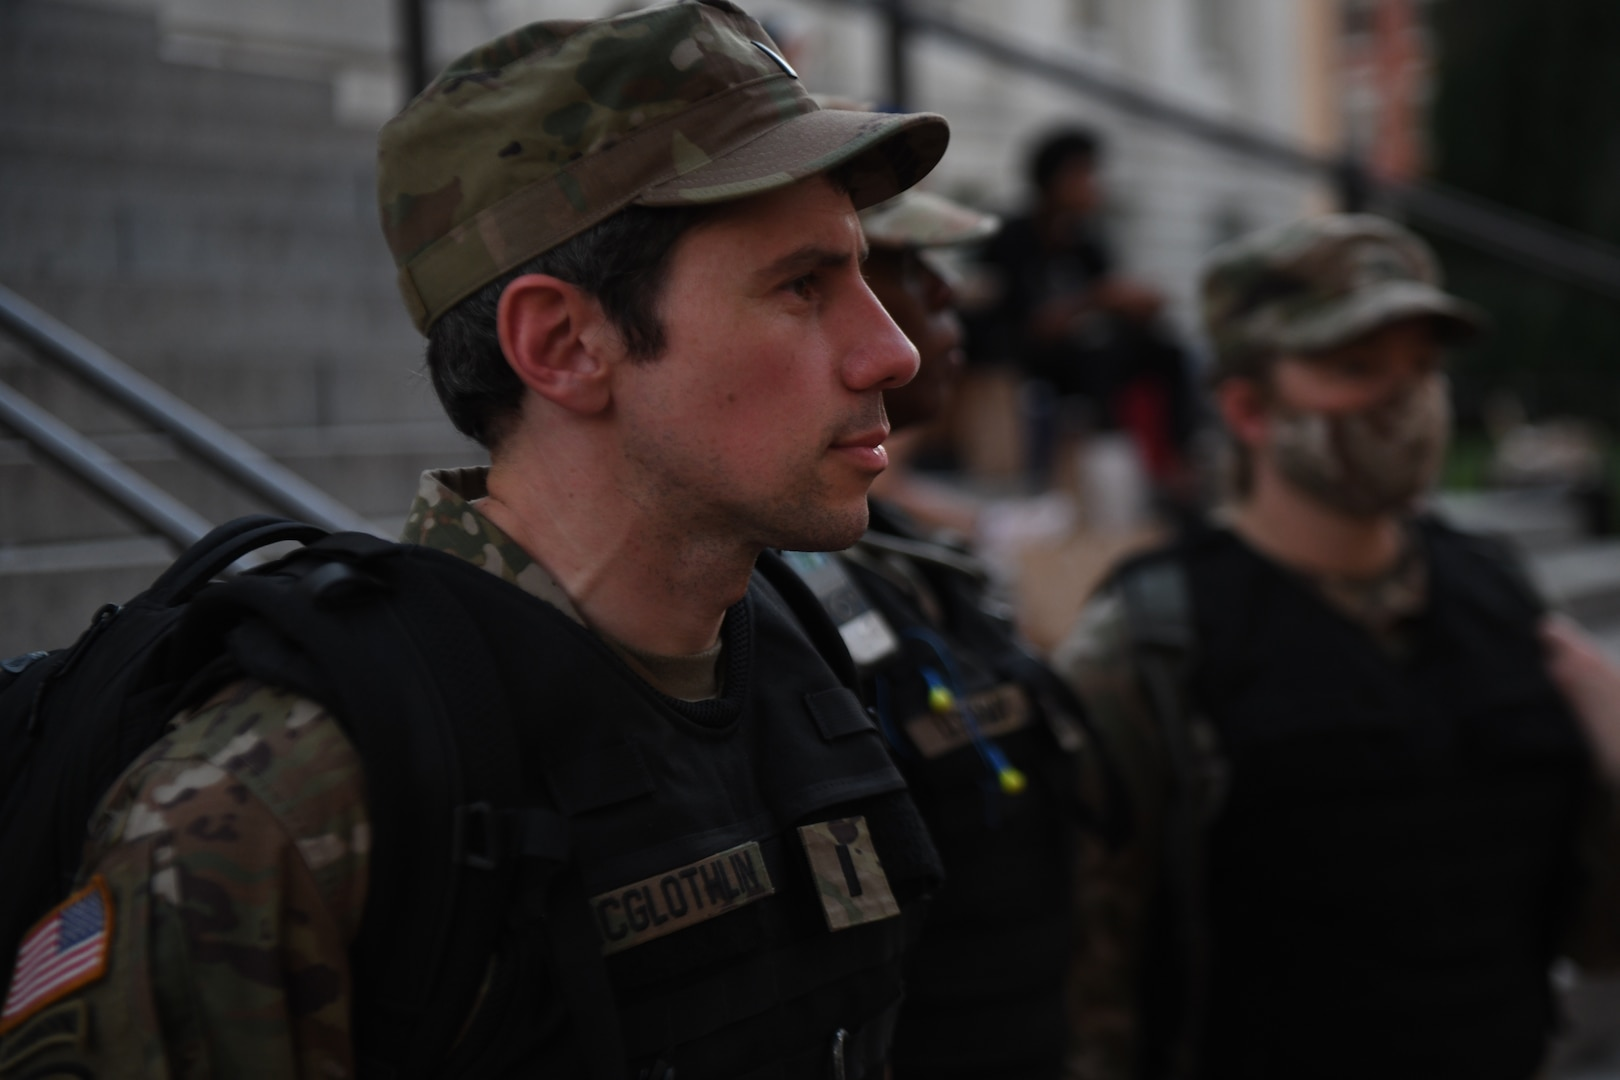 District of Columbia National Guard 1st Lt. John McGlothlin, an Army attorney, patrols Gallery Place Chinatown June 6, 2020, in Washington, D.C. McGlothlin was activated to help keep peace so demonstrators could protest.